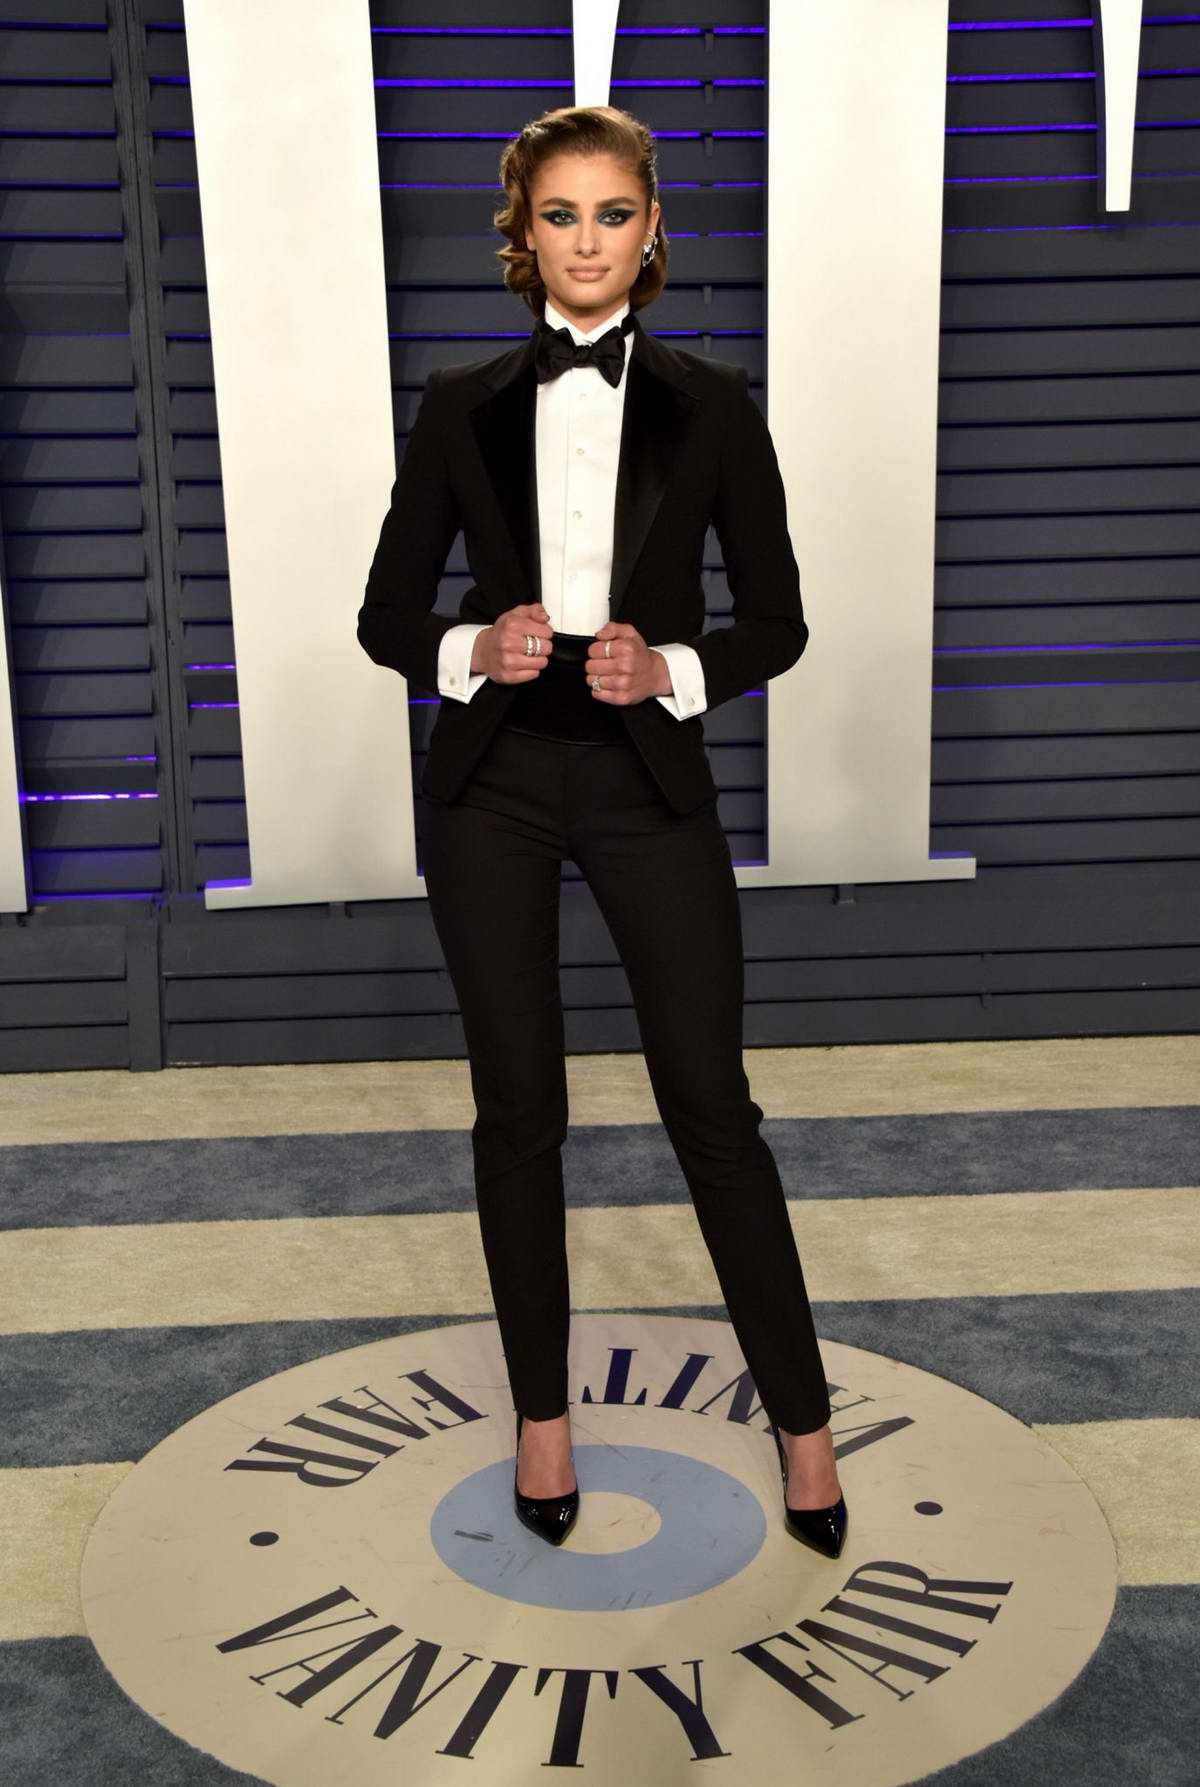 Taylor Hill attends the Vanity Fair Oscar Party at Wallis Annenberg Center for the Performing Arts in Beverly Hills, California